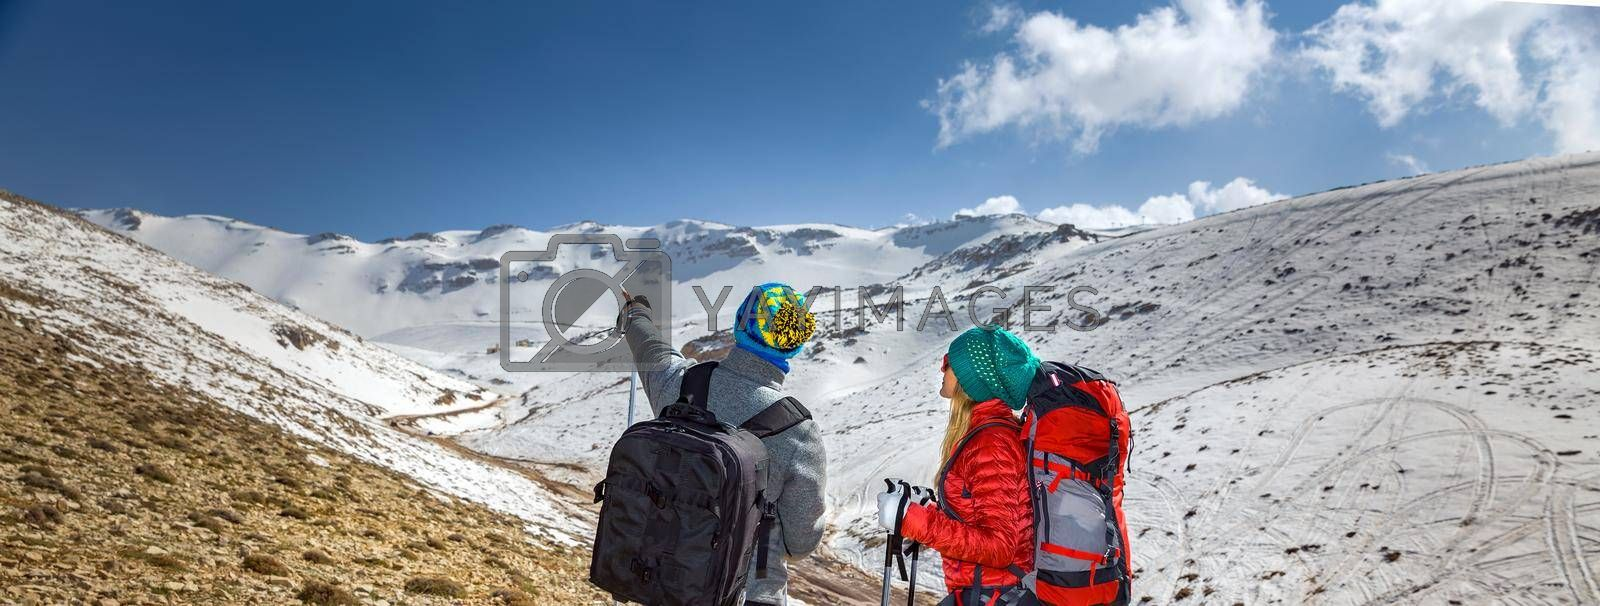 Rear View on a two Cheerful Sportsman Walking in the Snowy Mountains with Trekking Poles. Choosing Right Way. Active Winter Holidays.